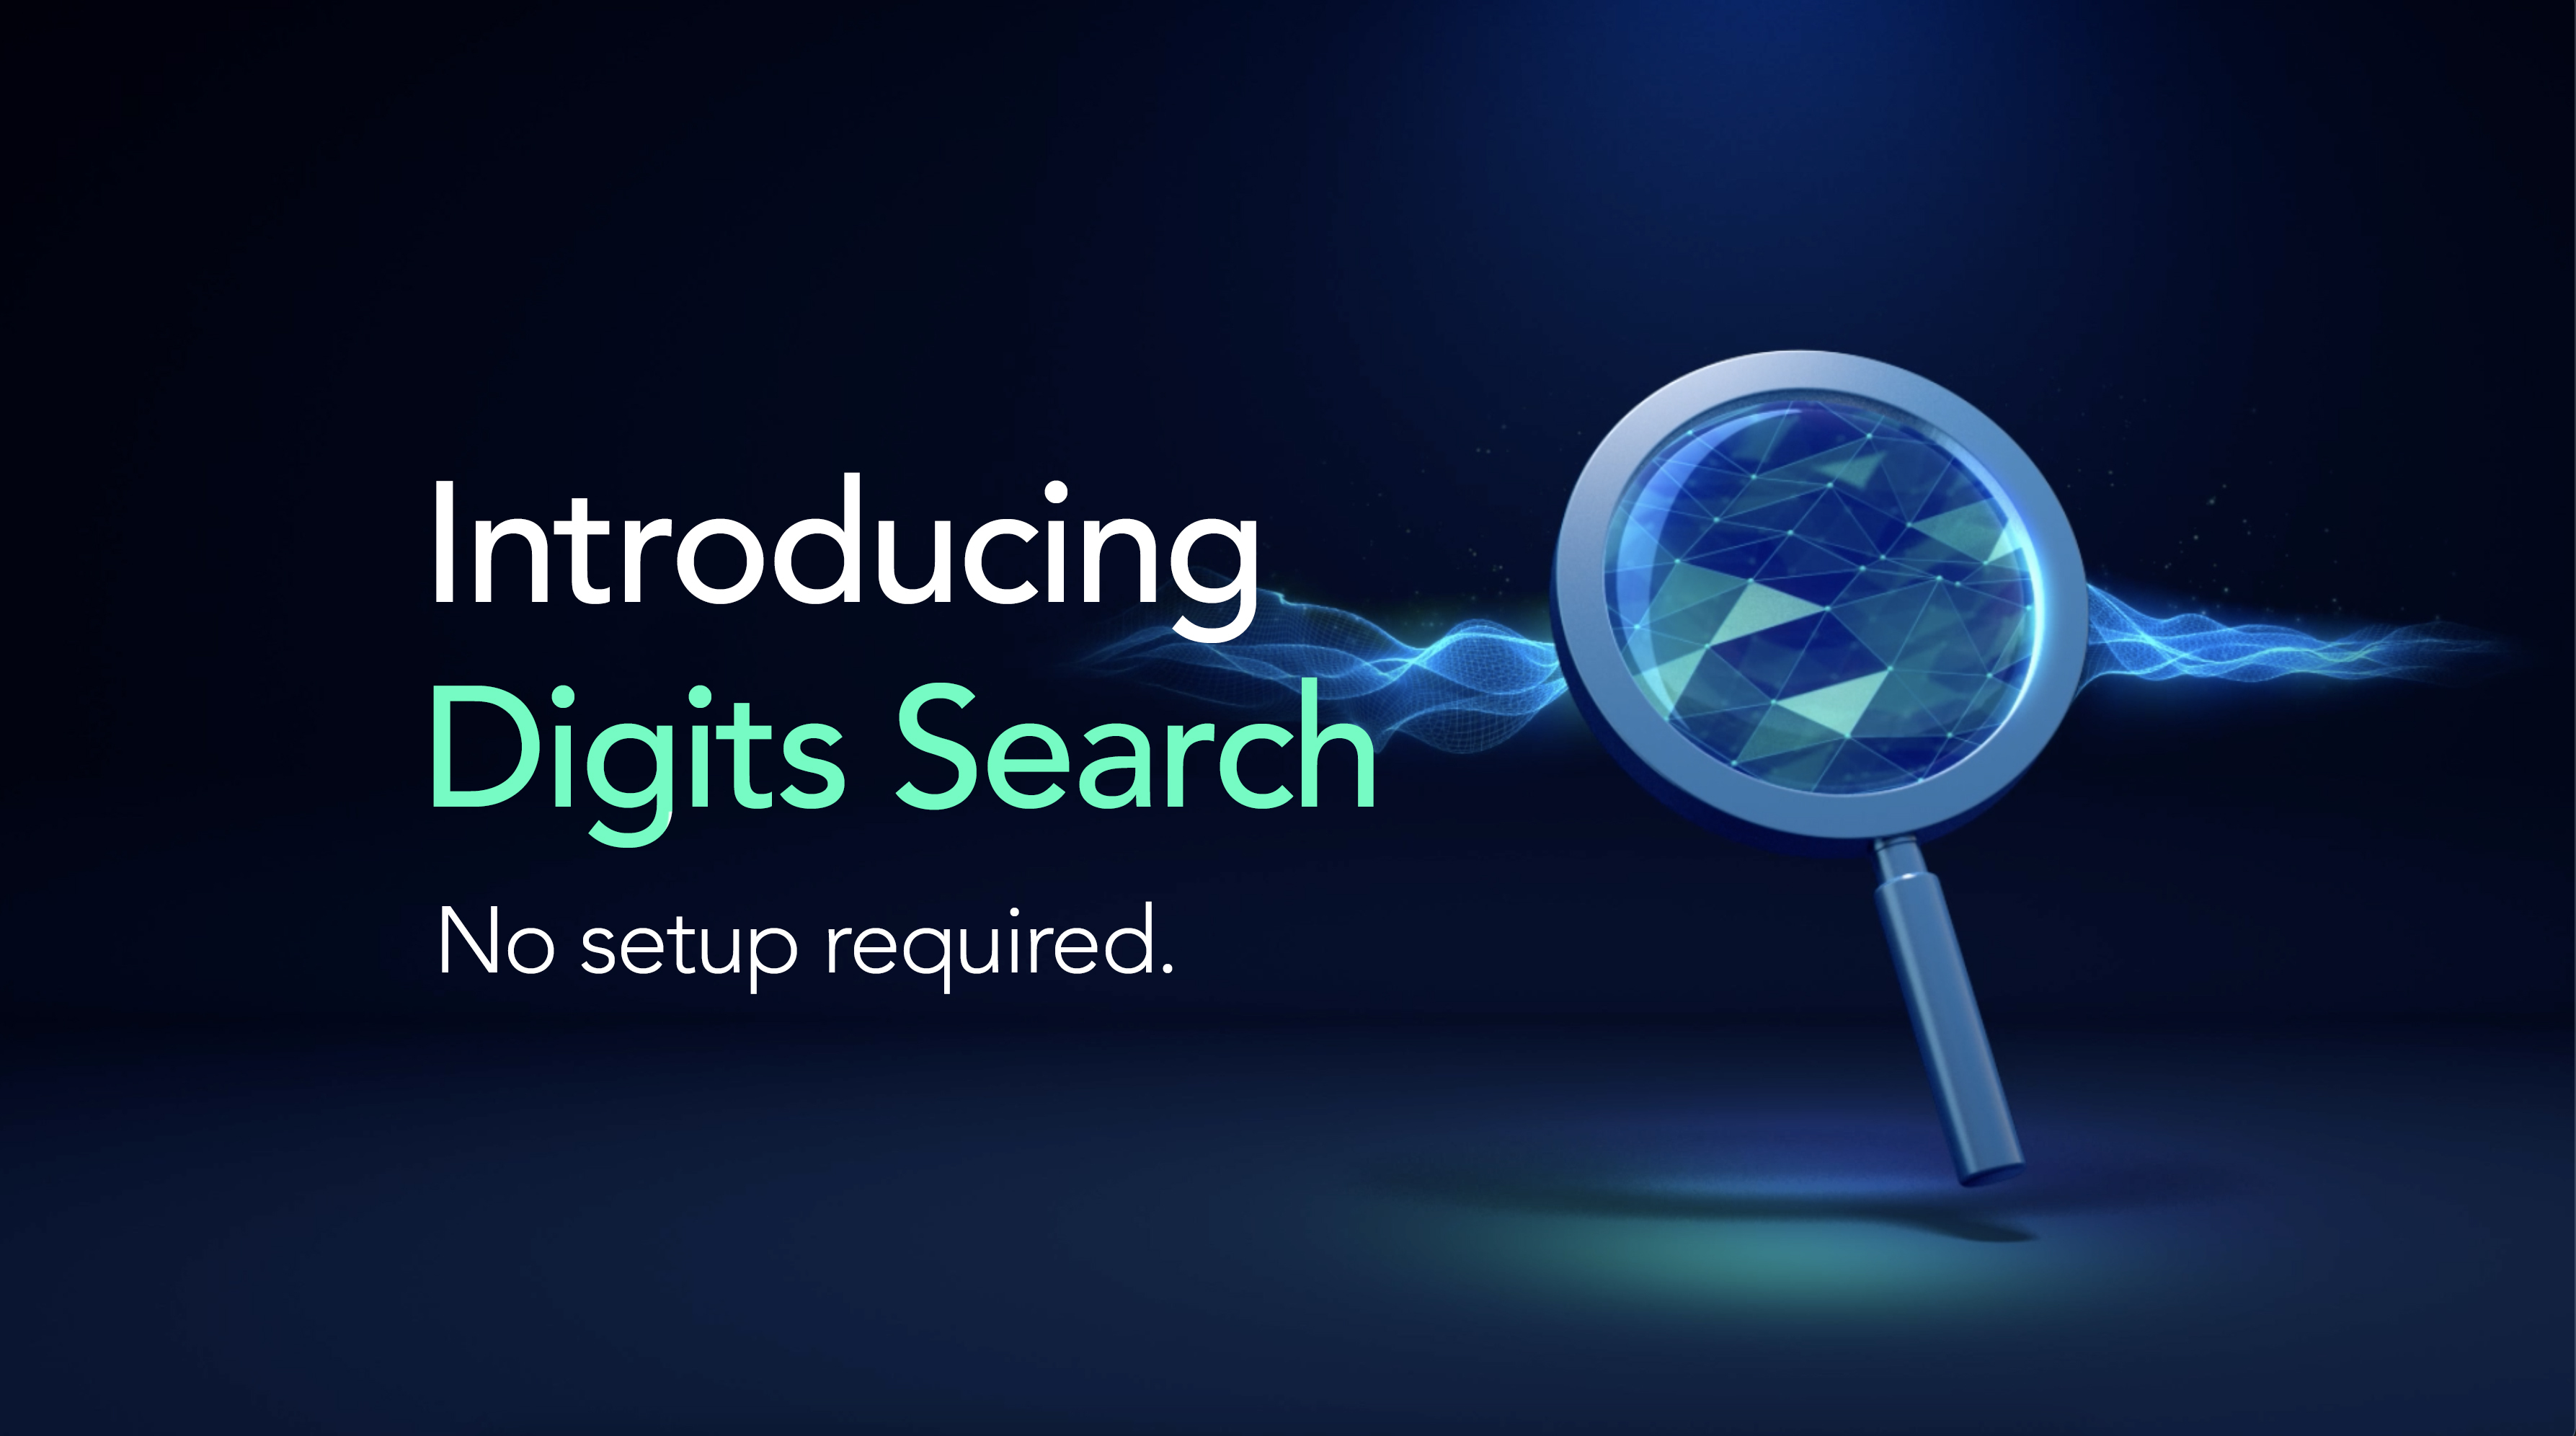 Digits Search was born from the frustrations we experienced building and growing our first companies. But the discomfort went beyond just frustration�